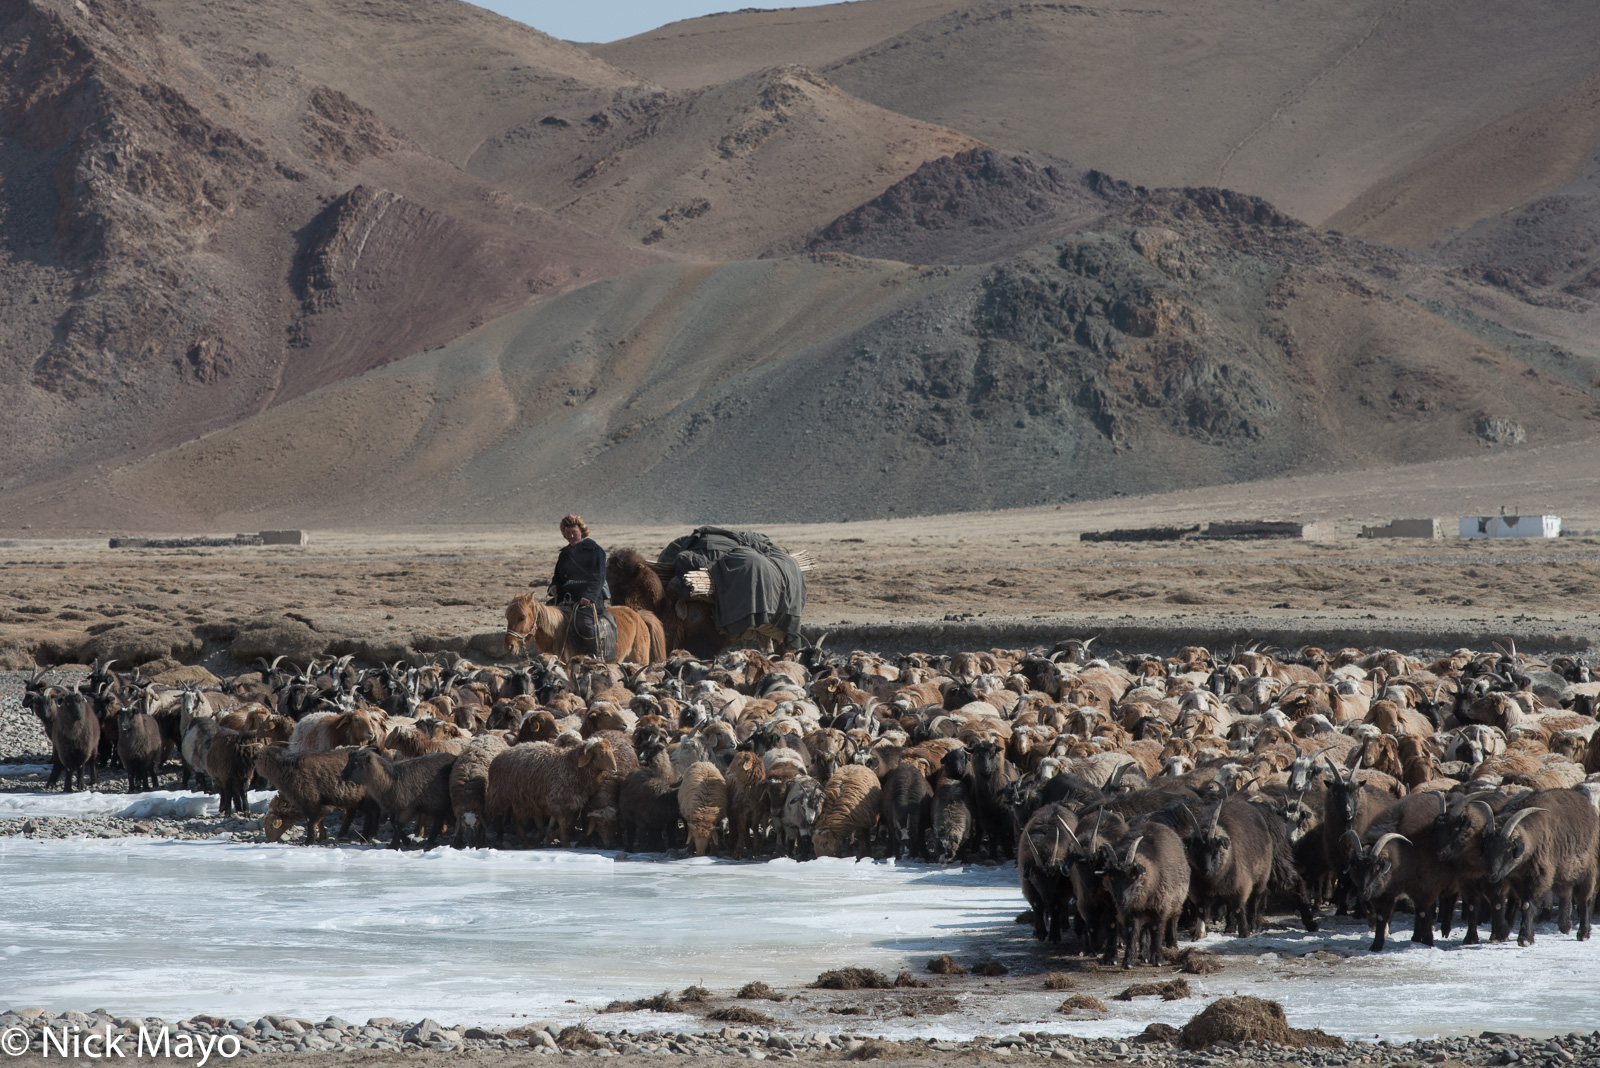 Bayan-Ölgii, Camel, Goat, Horse, Kazakh, Mongolia, Pack Animal, Sheep, photo